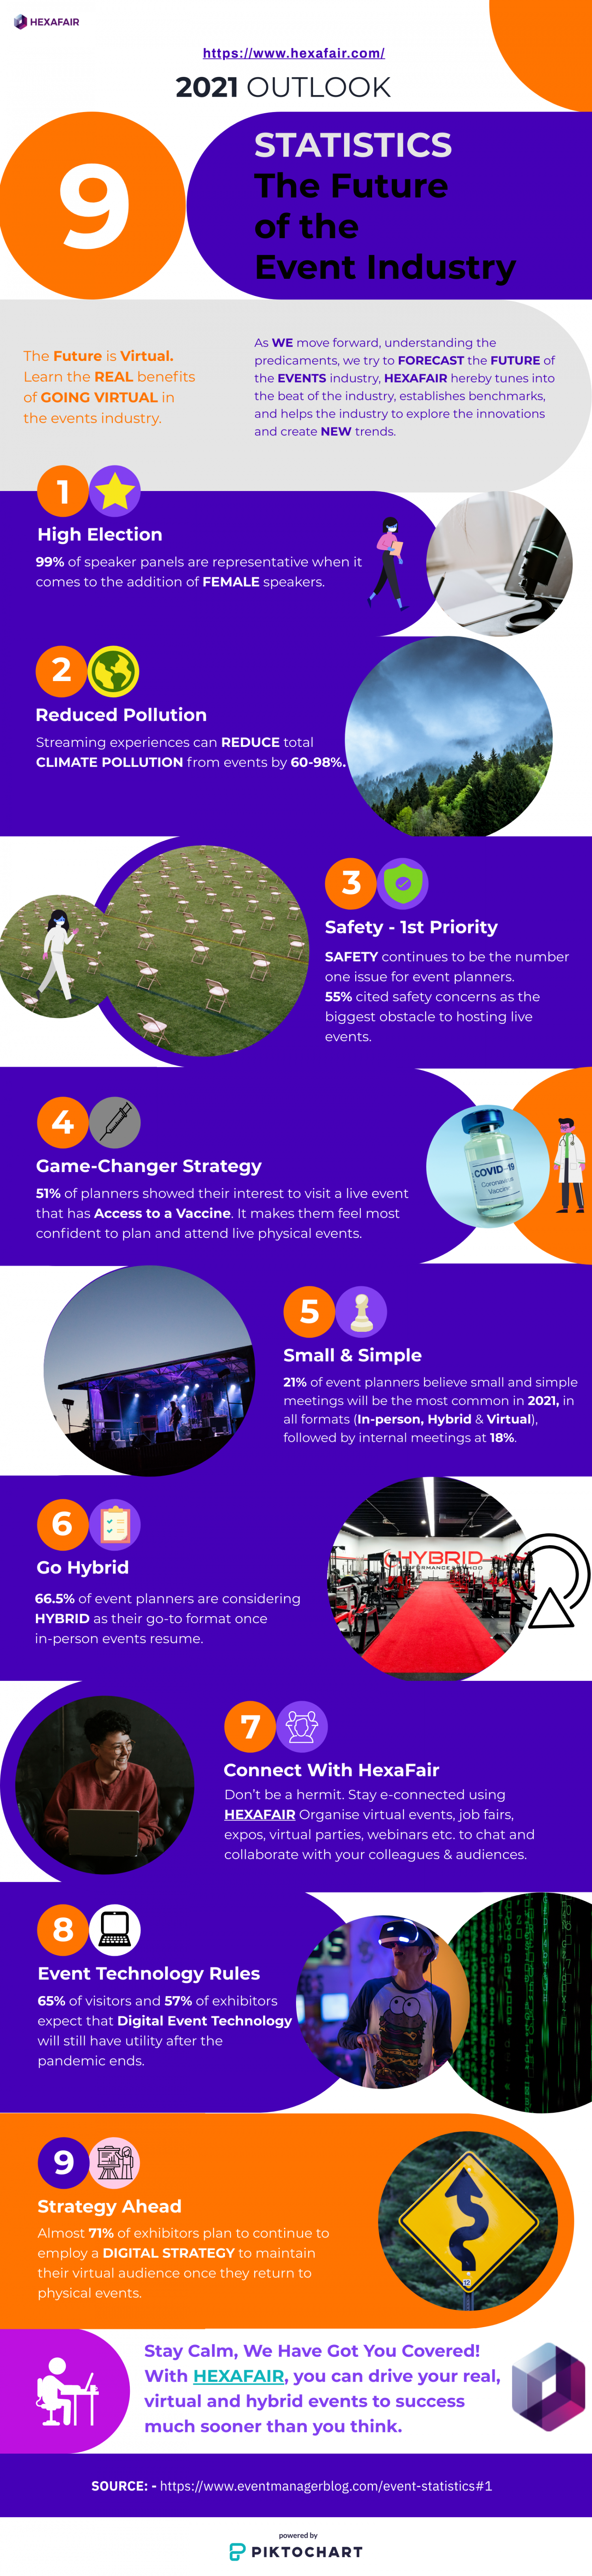 9 Event Statistics, The Future of the Event Industry 2021 Infographic